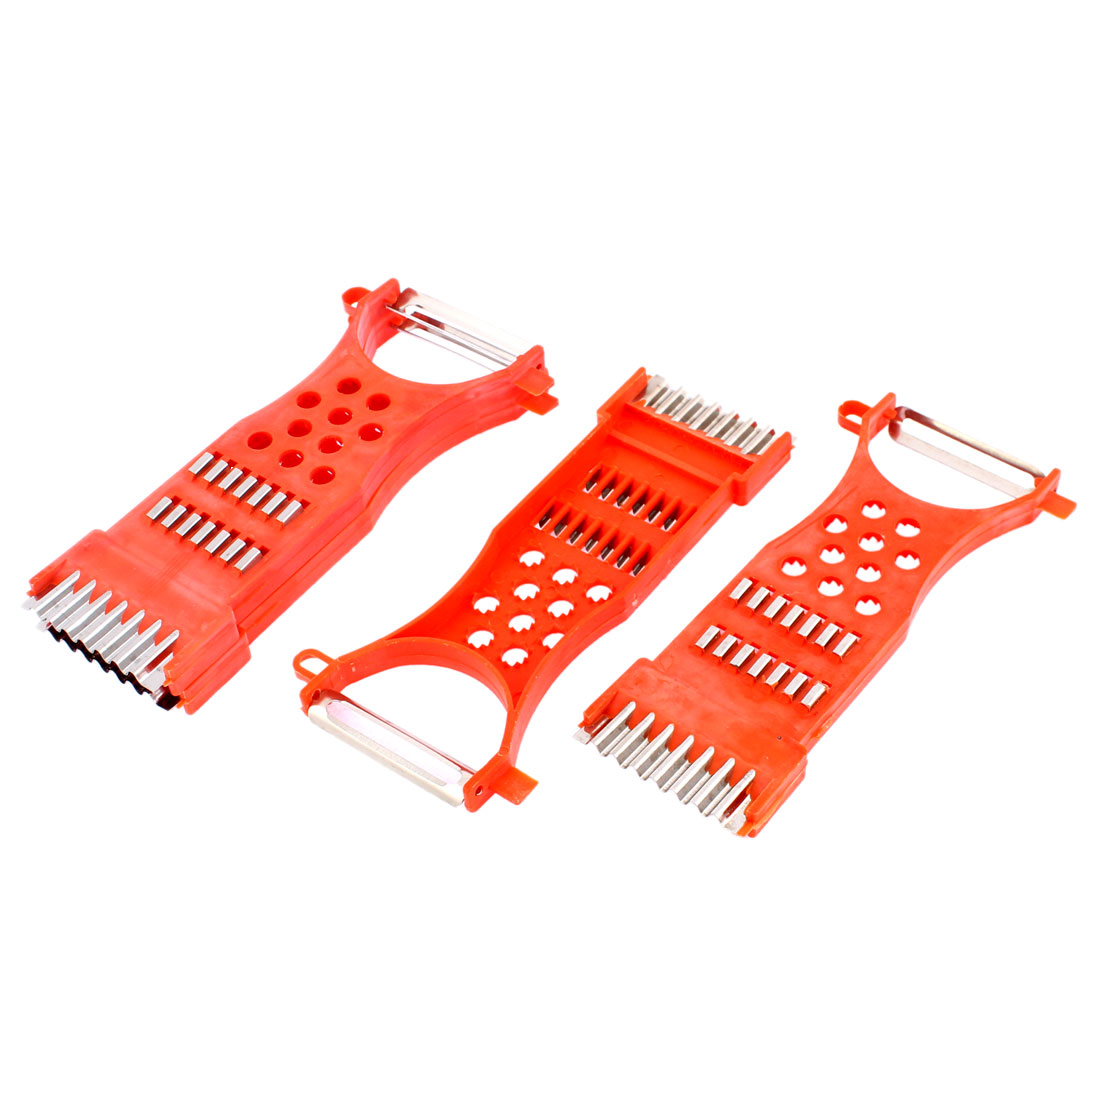 Kitchen Multifunctional Vegetable Fruit Grater Slicer Peeler Cutter Tool 4pcs